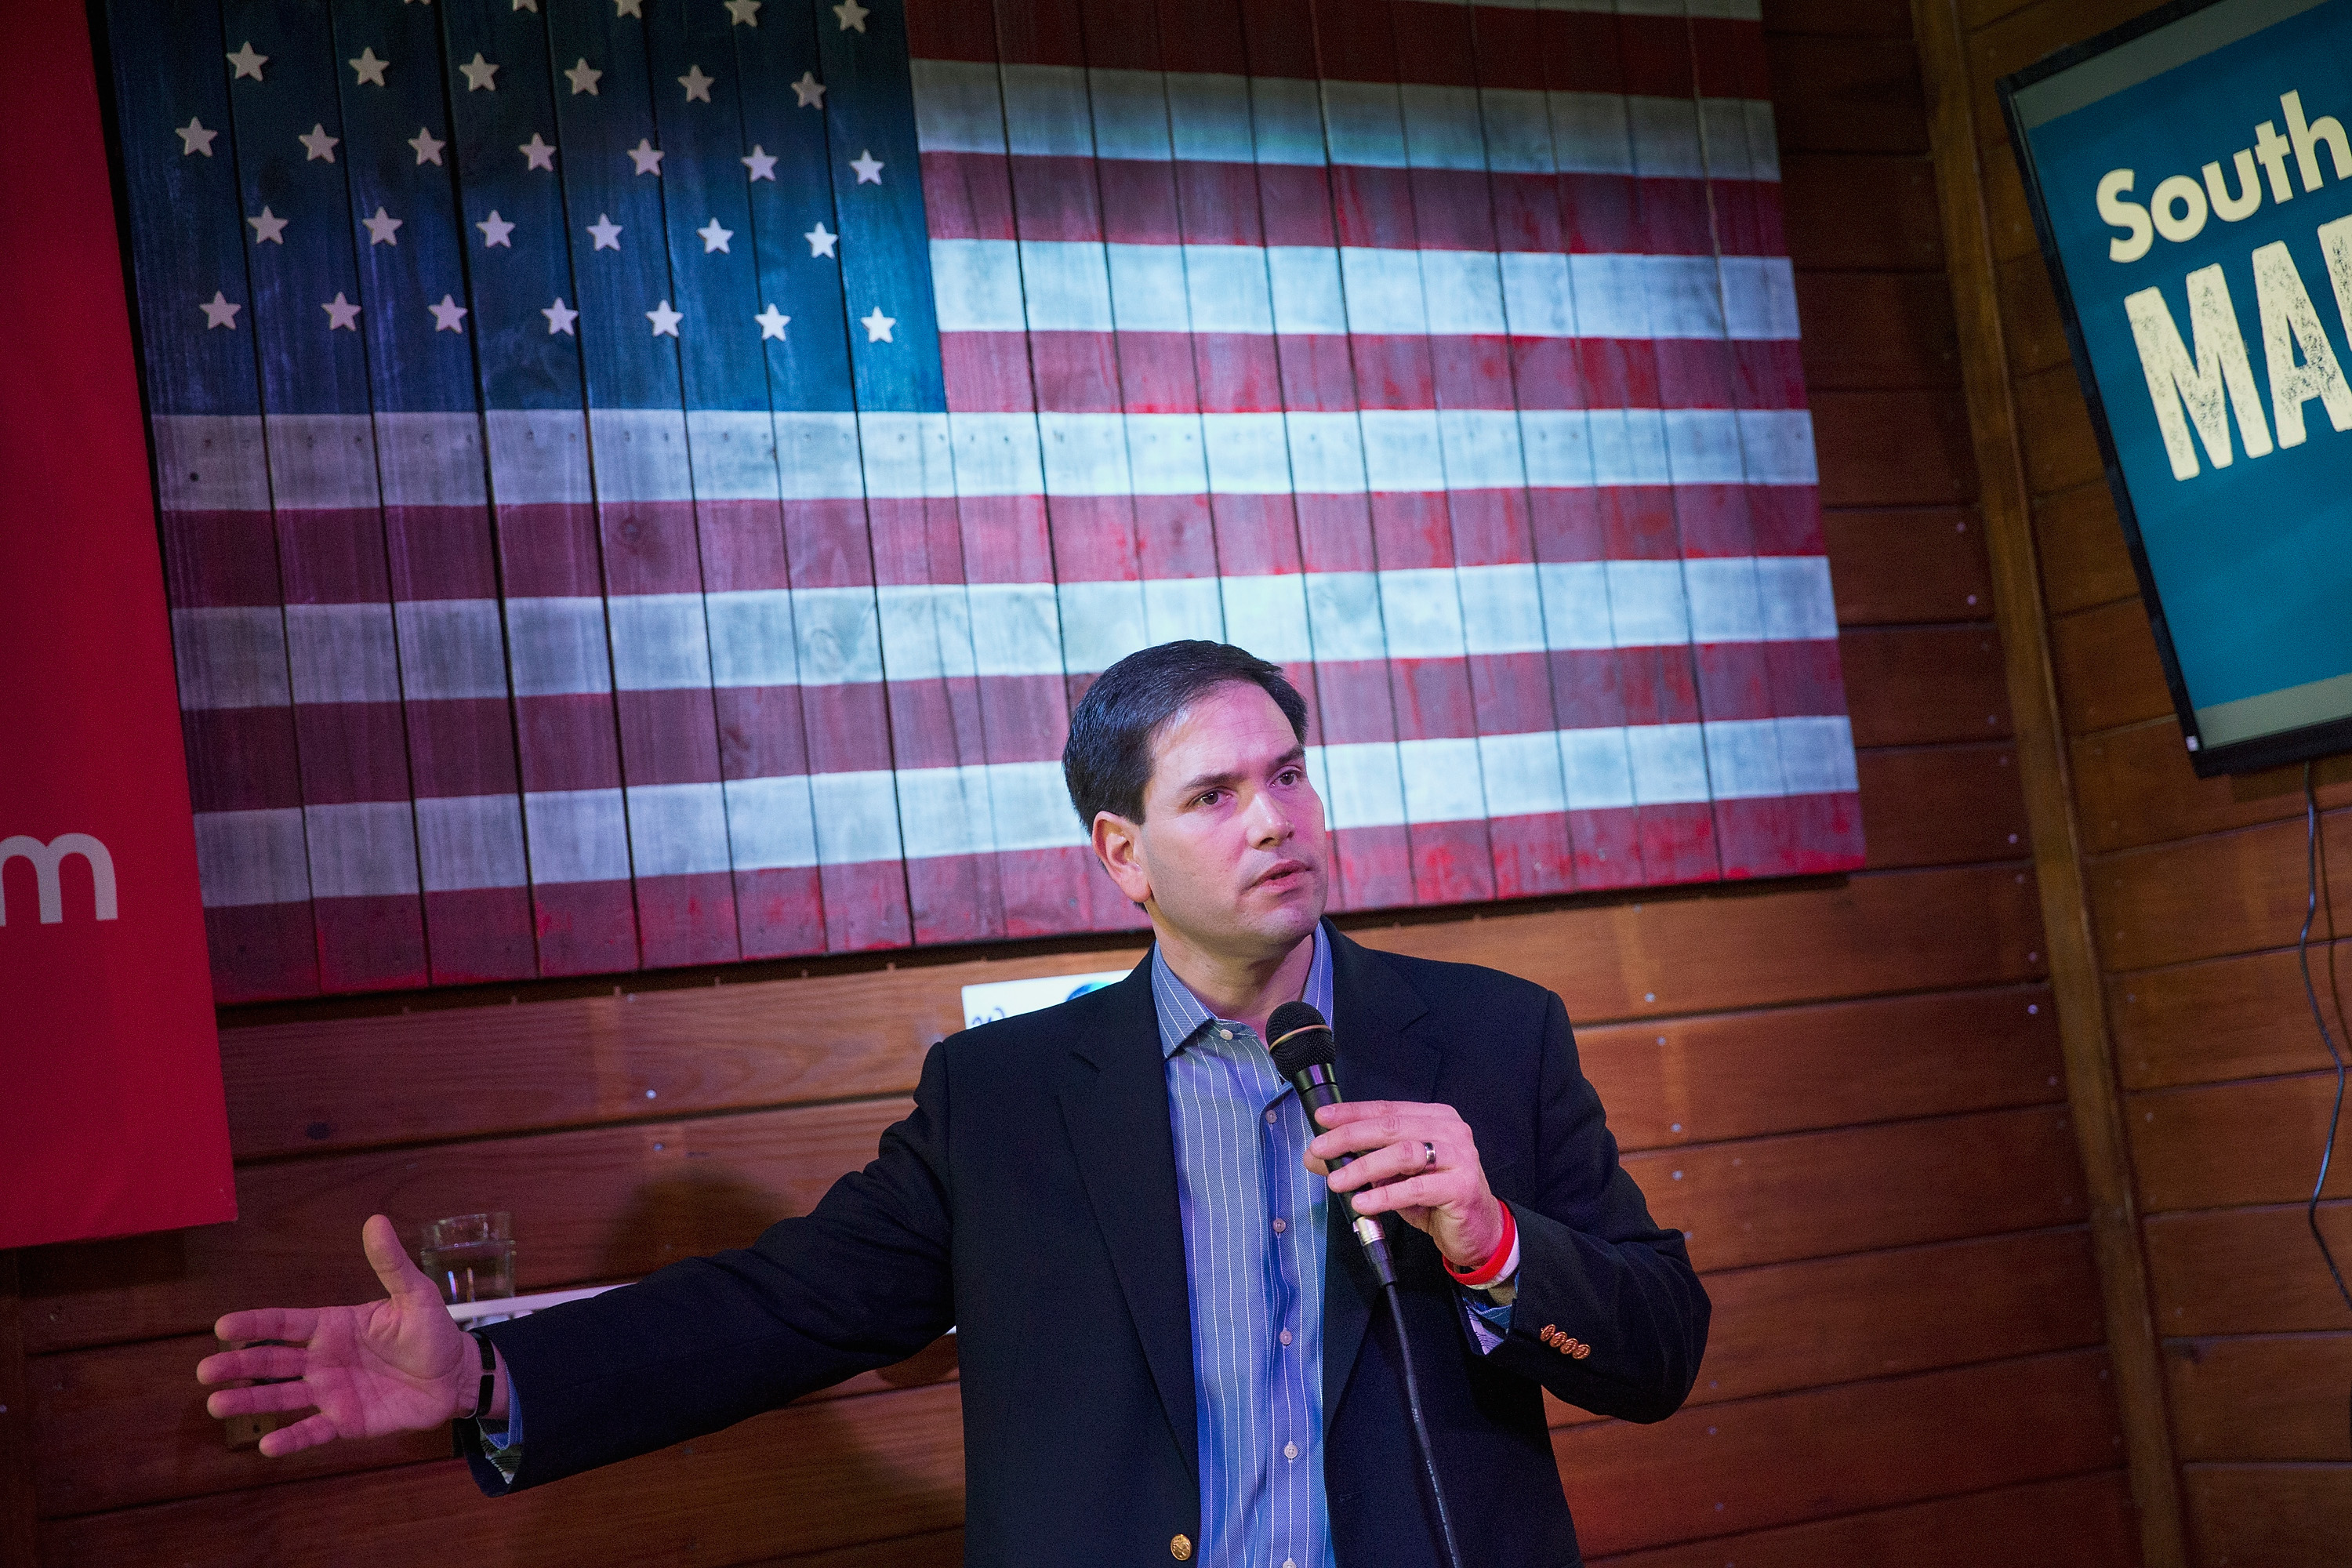 Marco Rubio at a campaign stop in South Carolina.